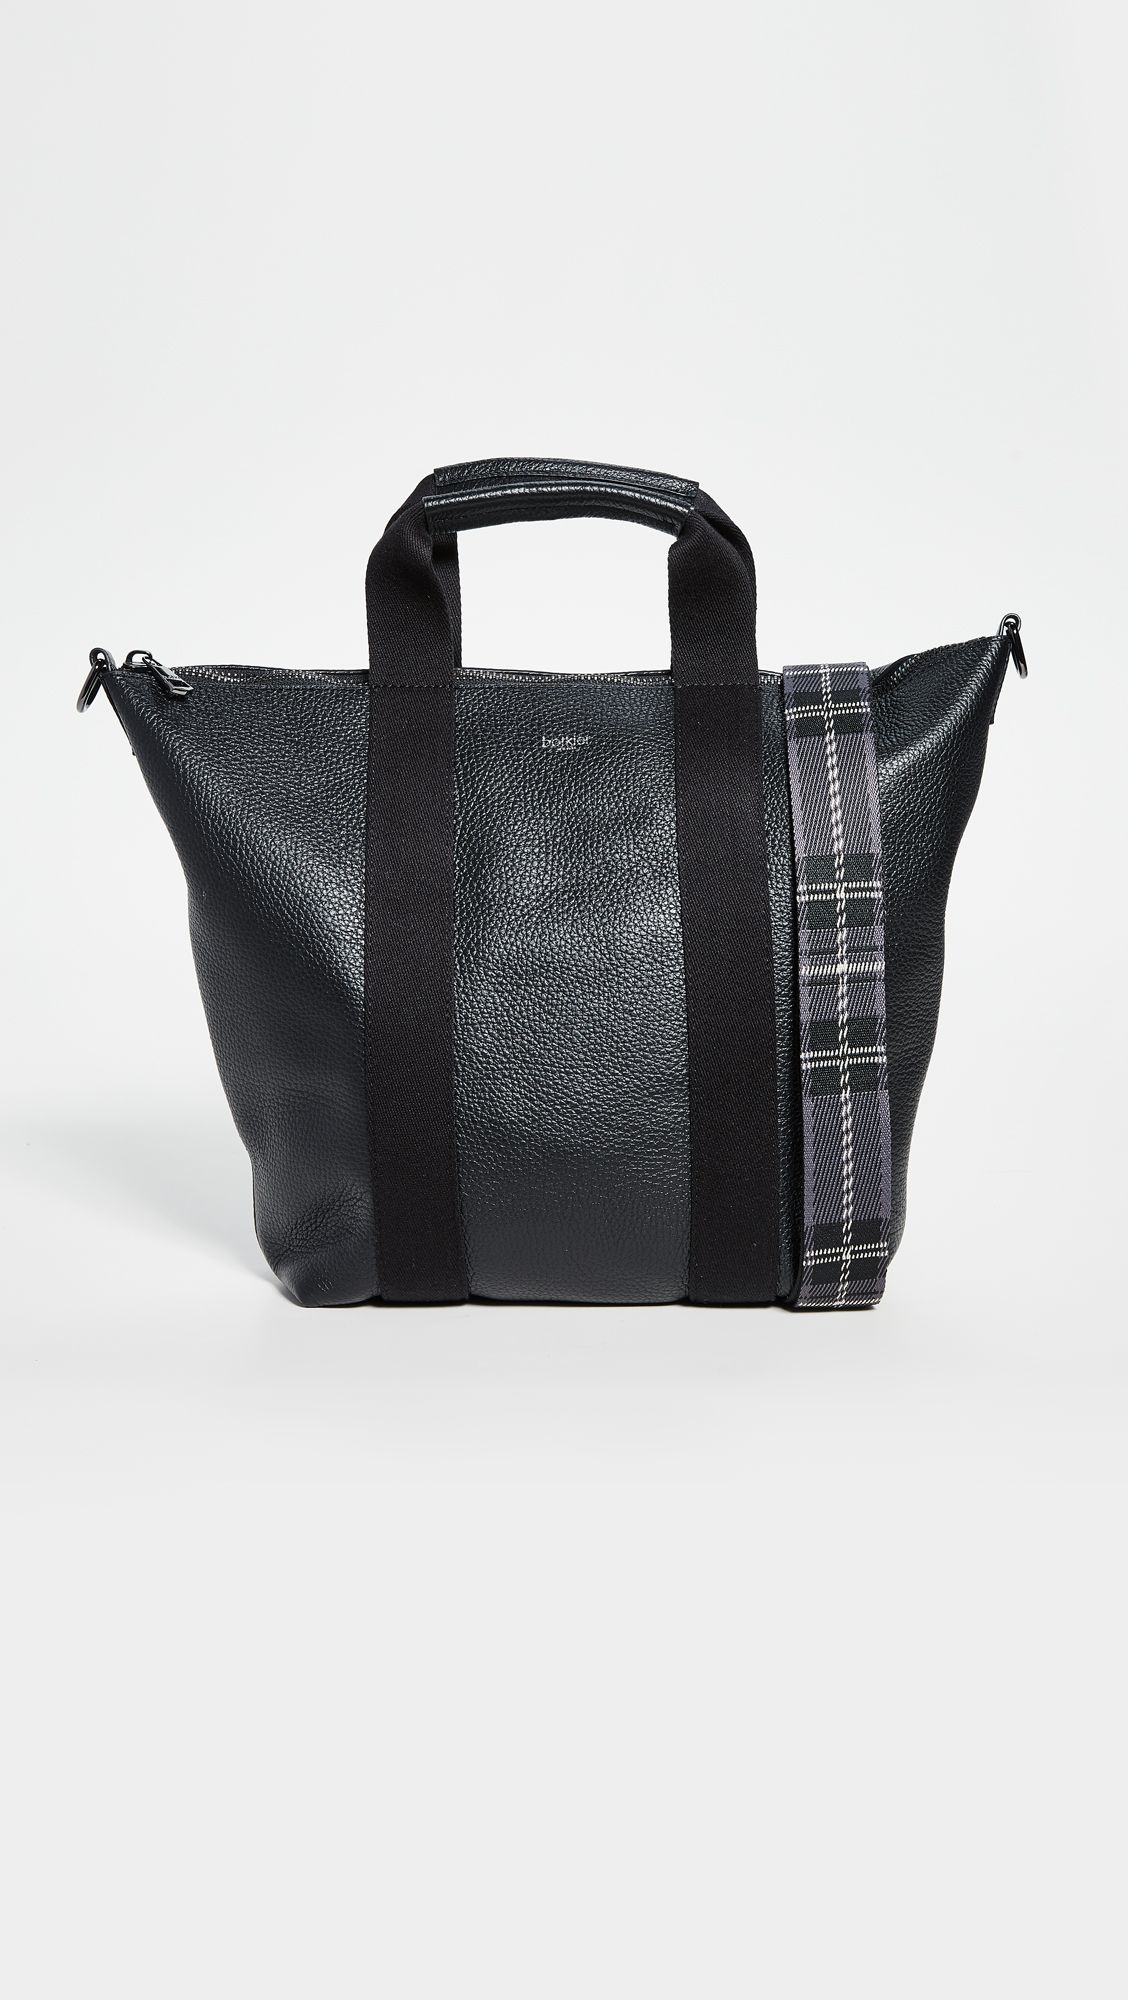 Botkier Sutton Place Tote Bag SAVE UP TO 40 SURPRISE SALE